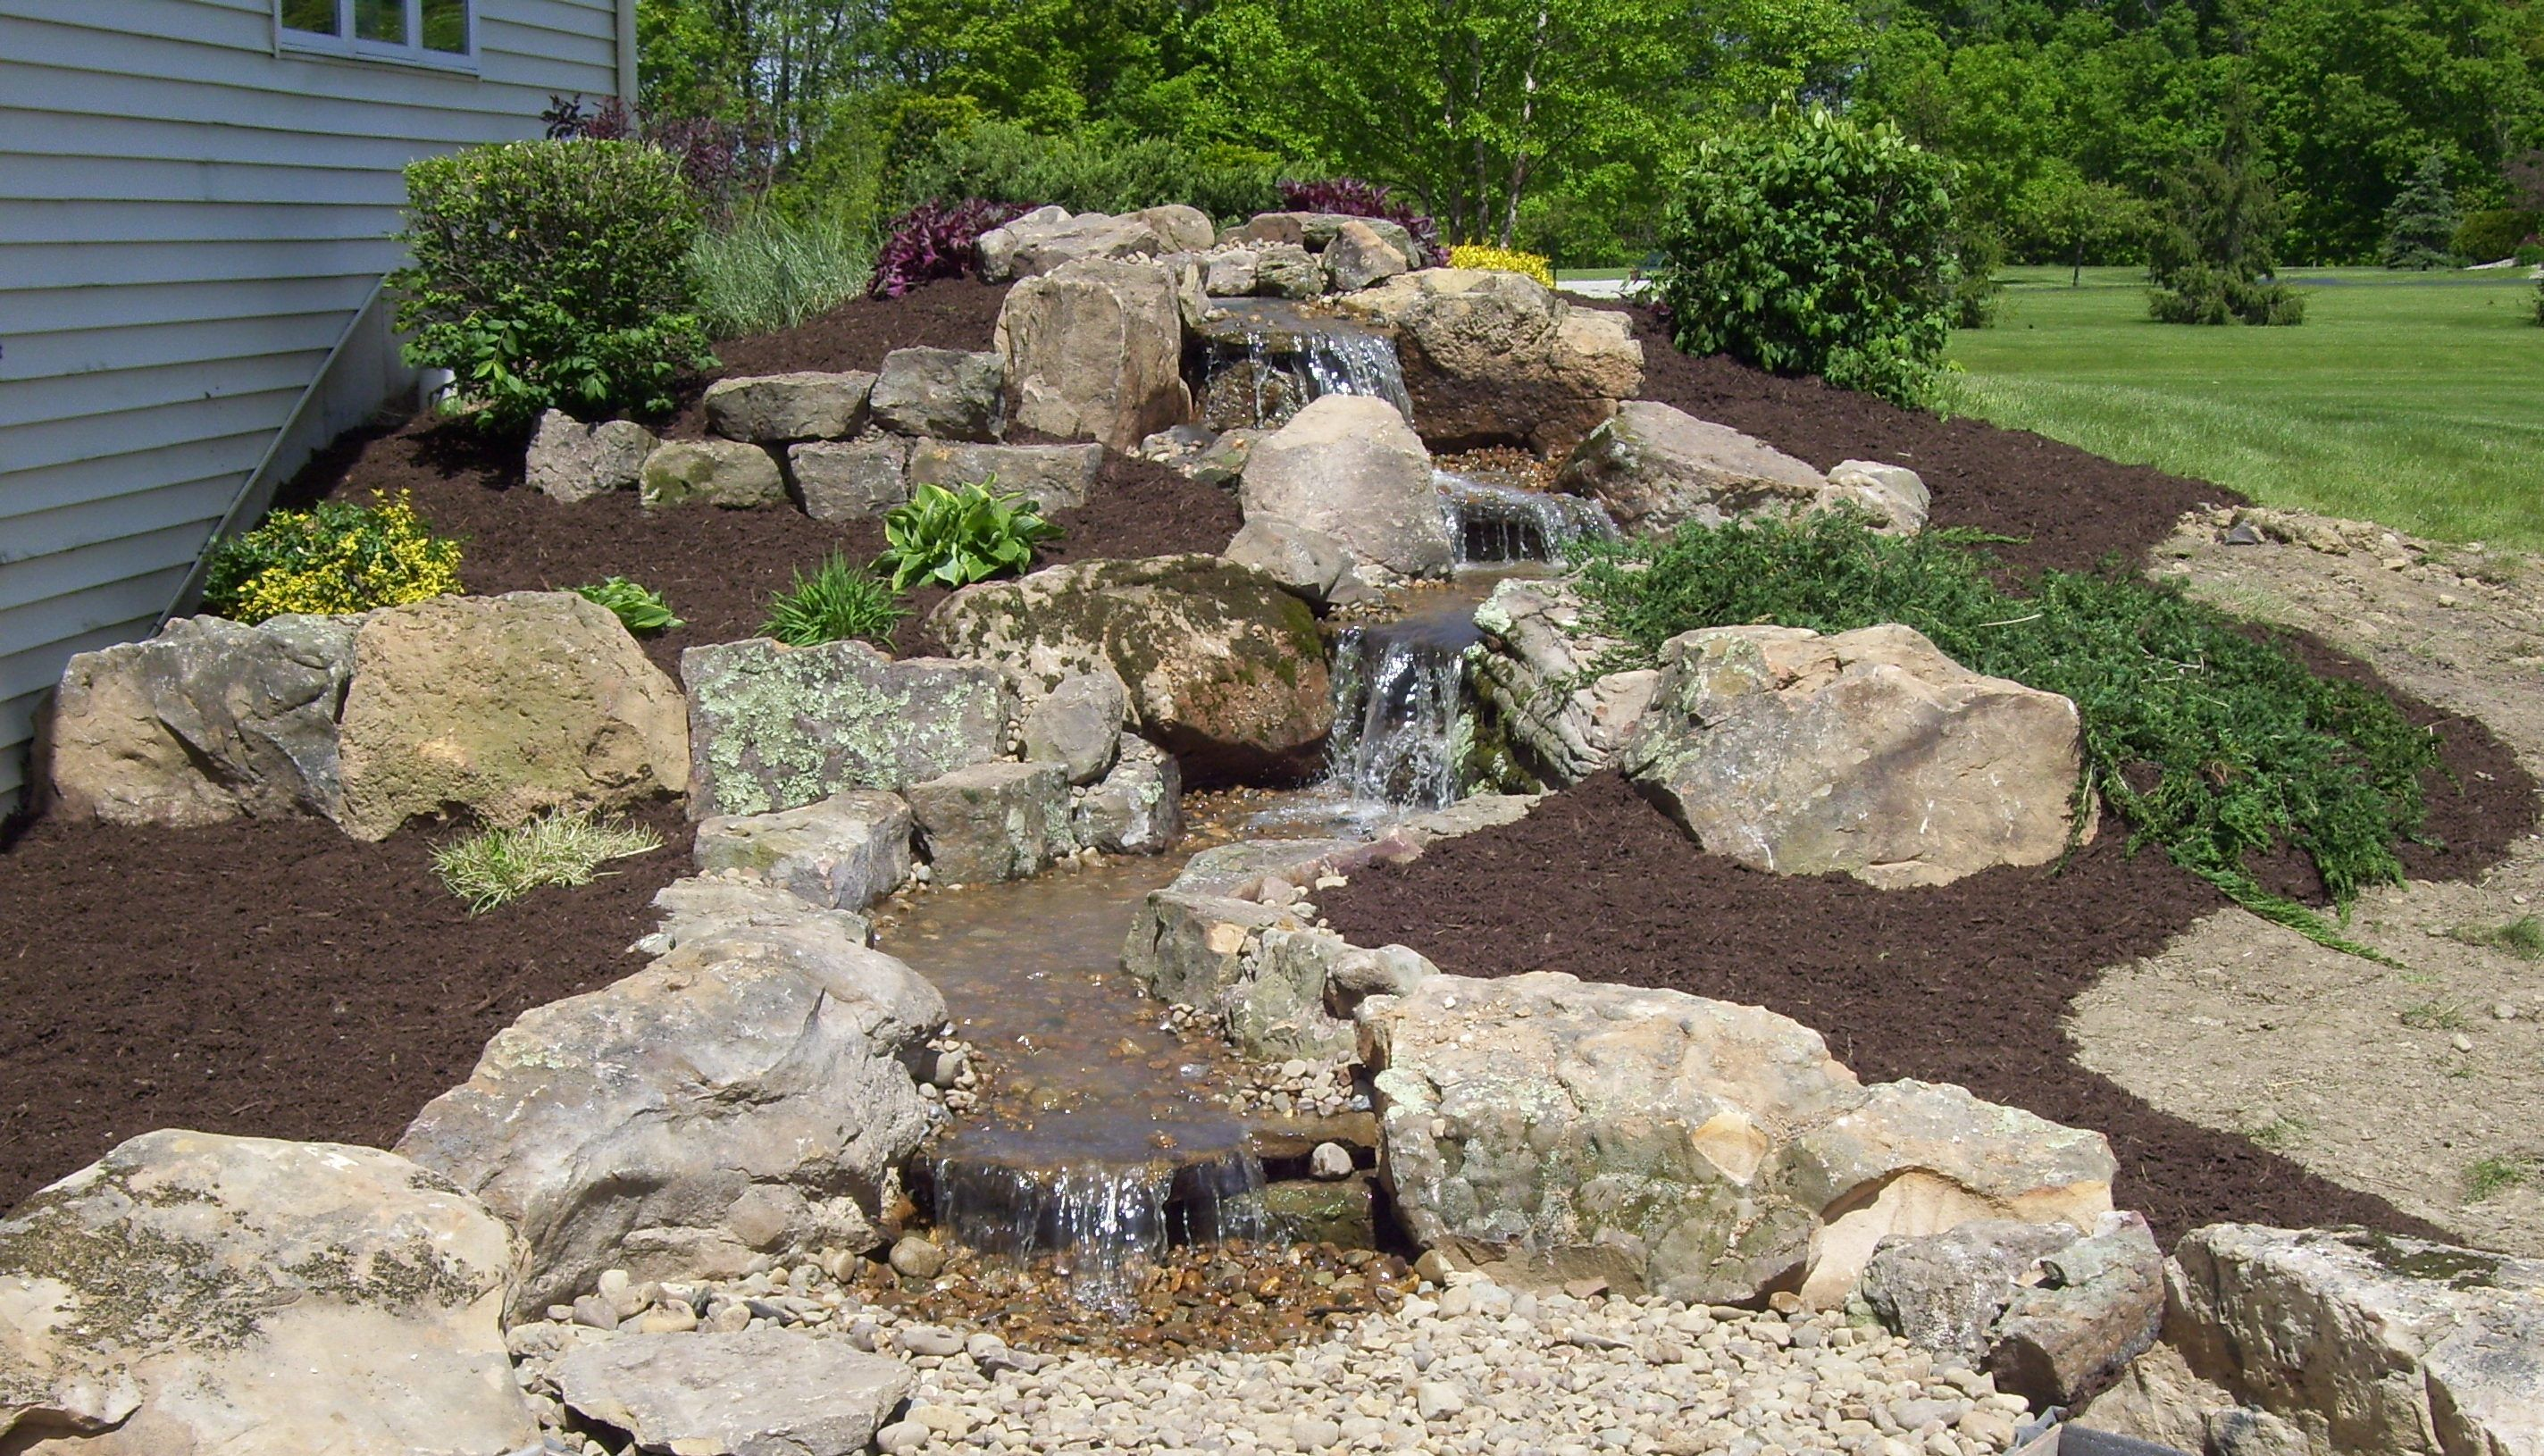 Water garden tour links putting greens small back yard for Pond features and fountains